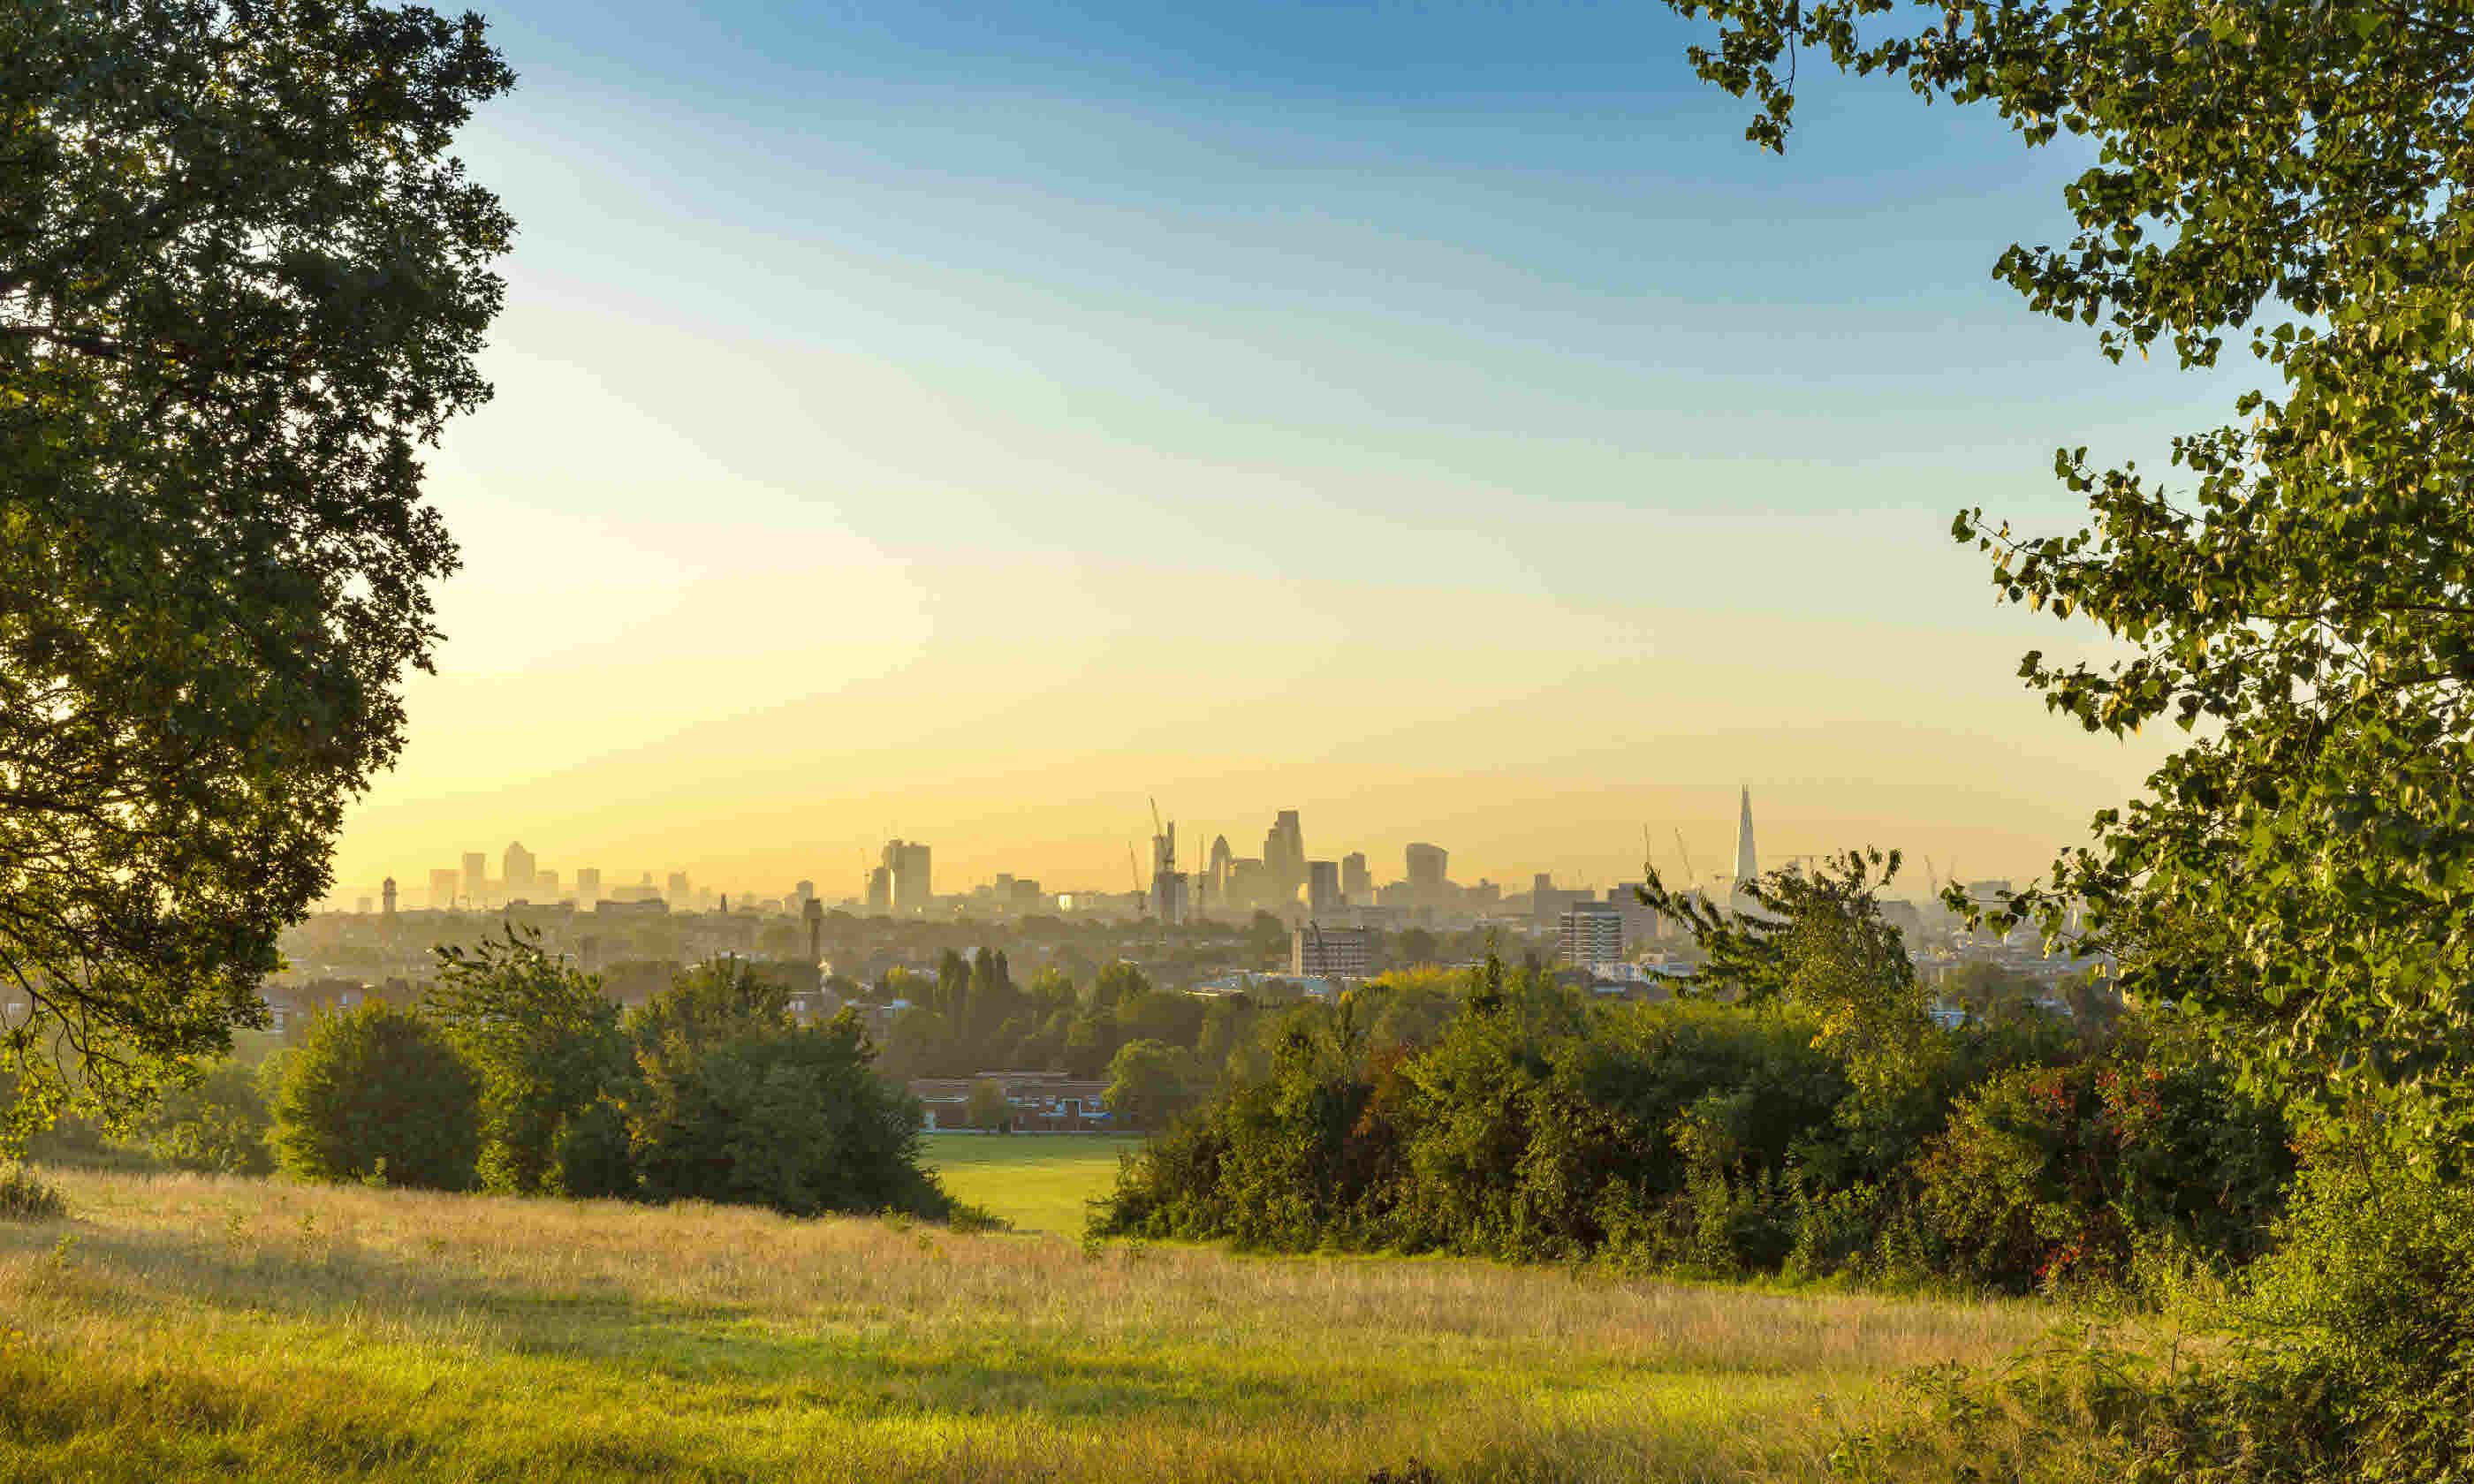 Early morning mist on Hampstead Heath (Shutterstock)